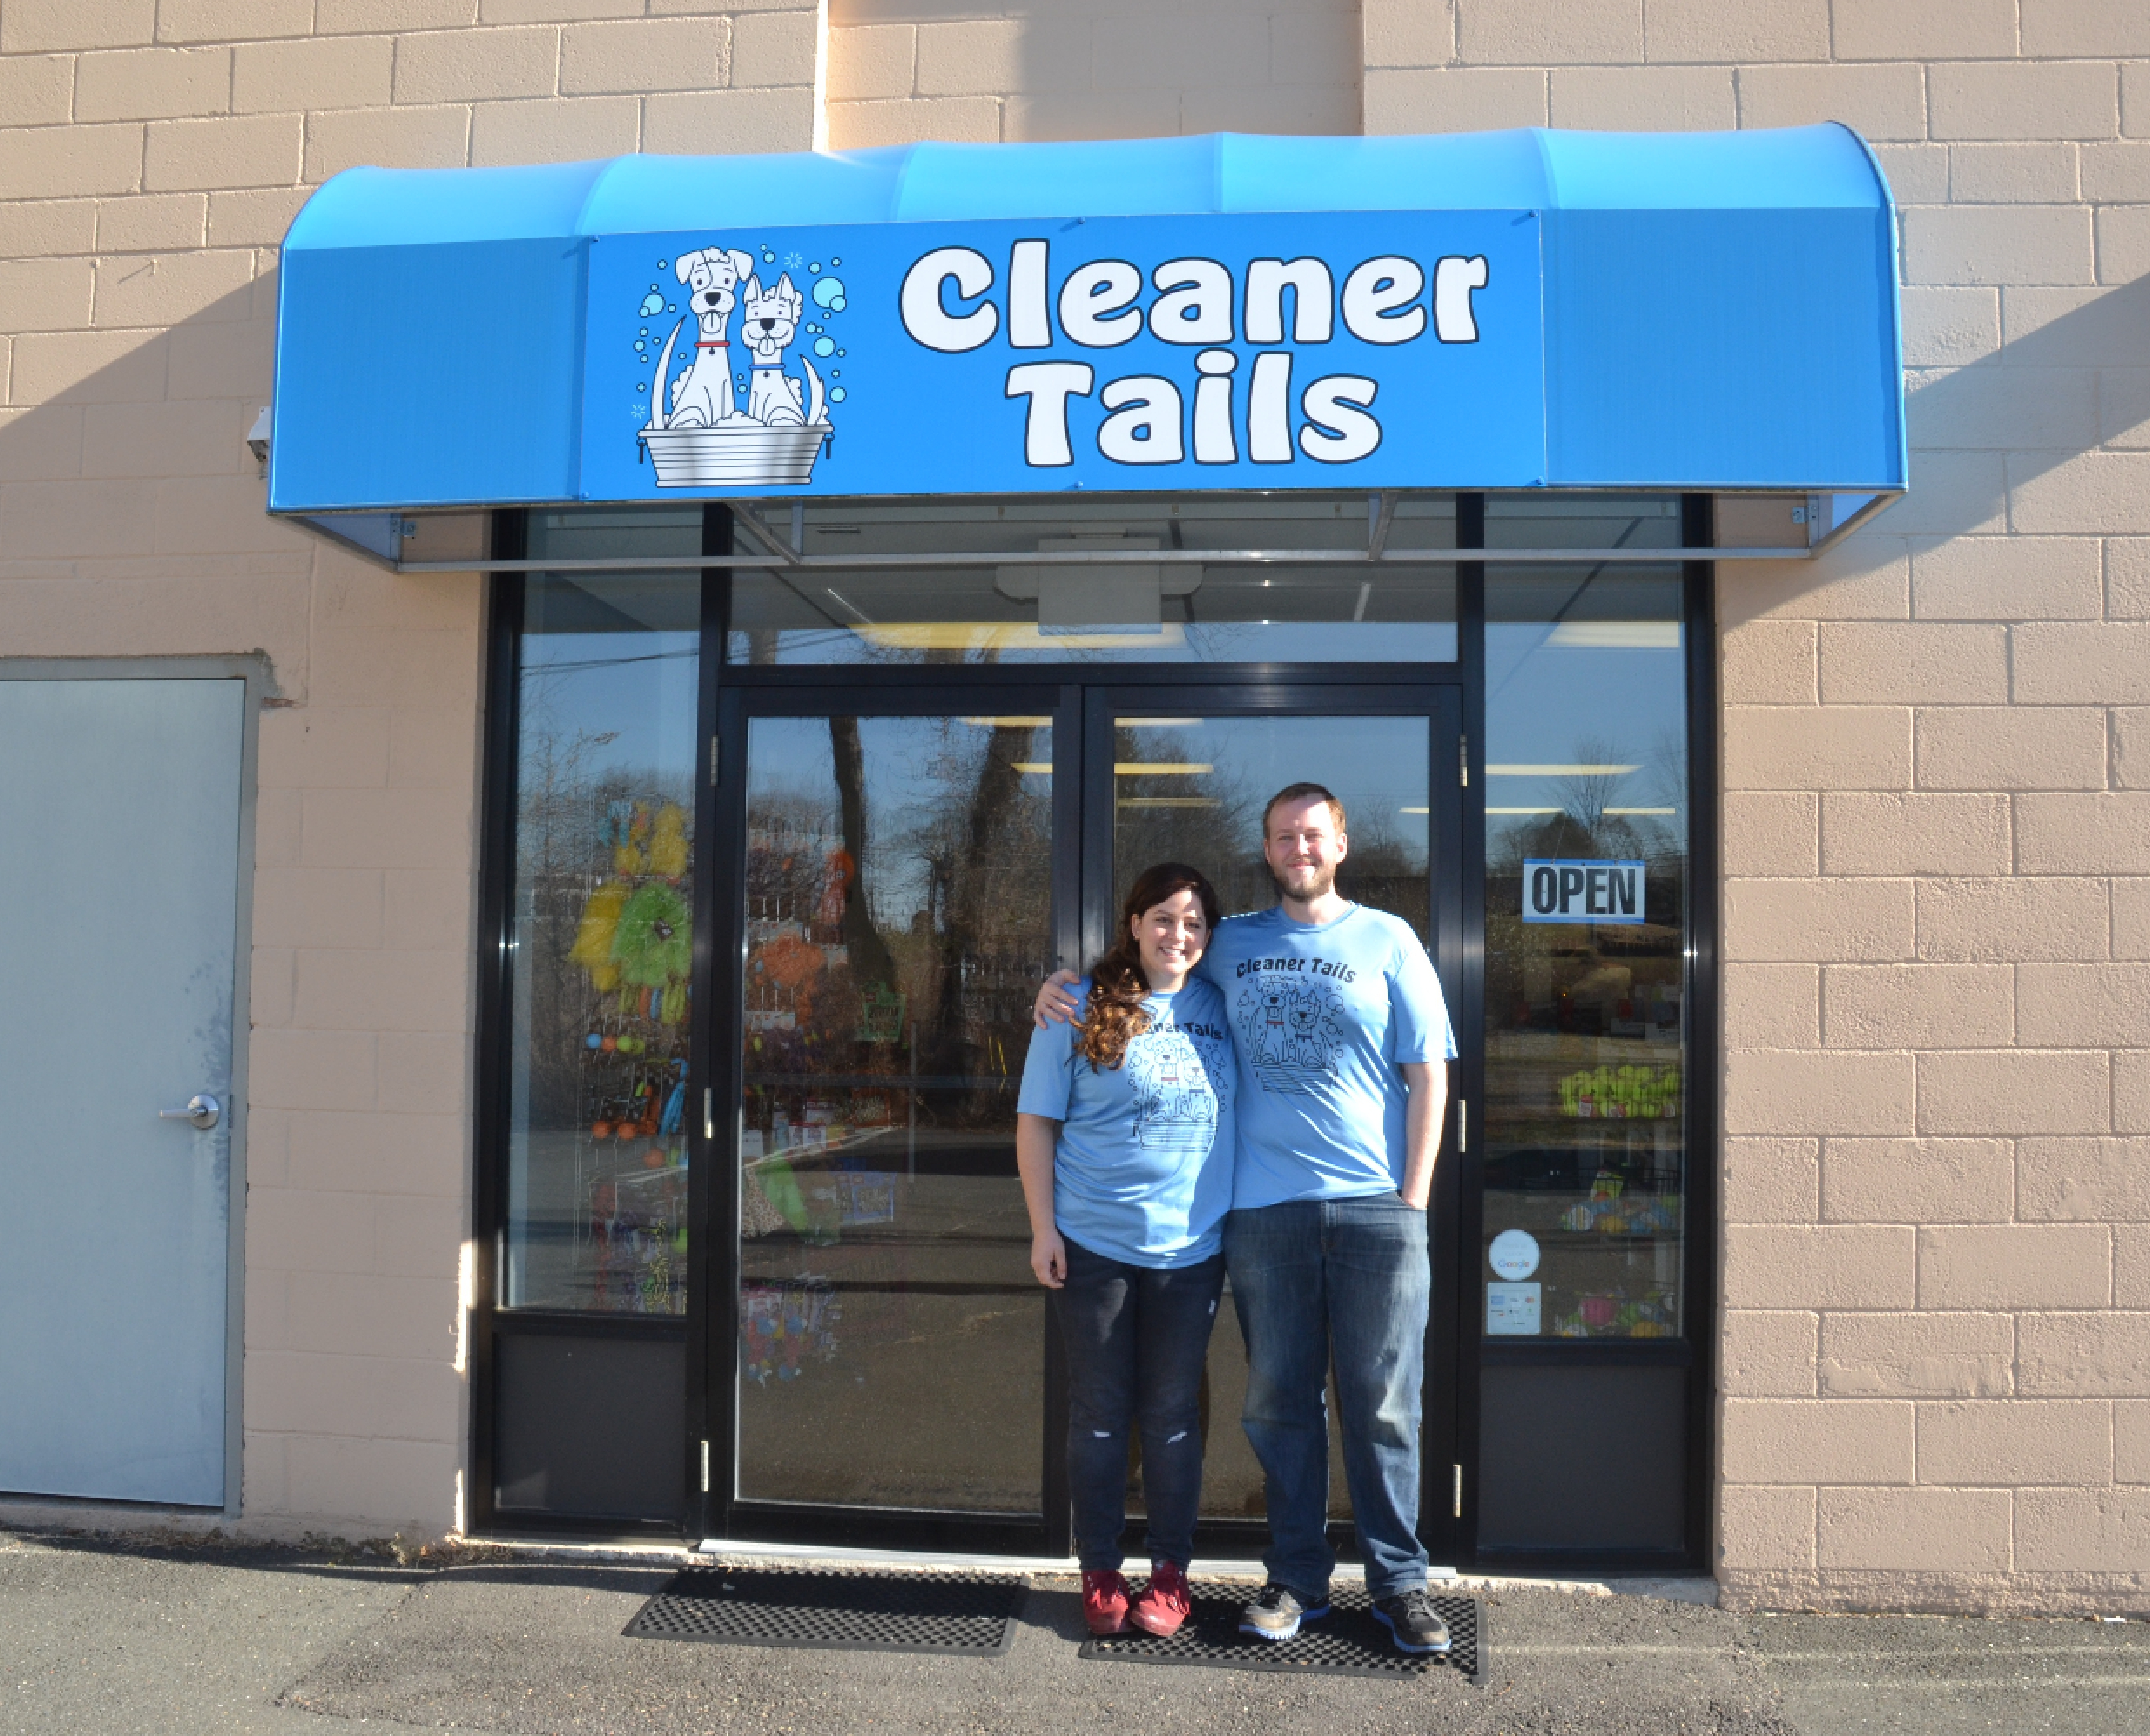 Business buzz cleaner tails the newtown bee cleaner tails in bethel is a do it yourself dog wash full service grooming and pet supply store pictured are owners tamara cabrero and stephen kaponyas solutioingenieria Images